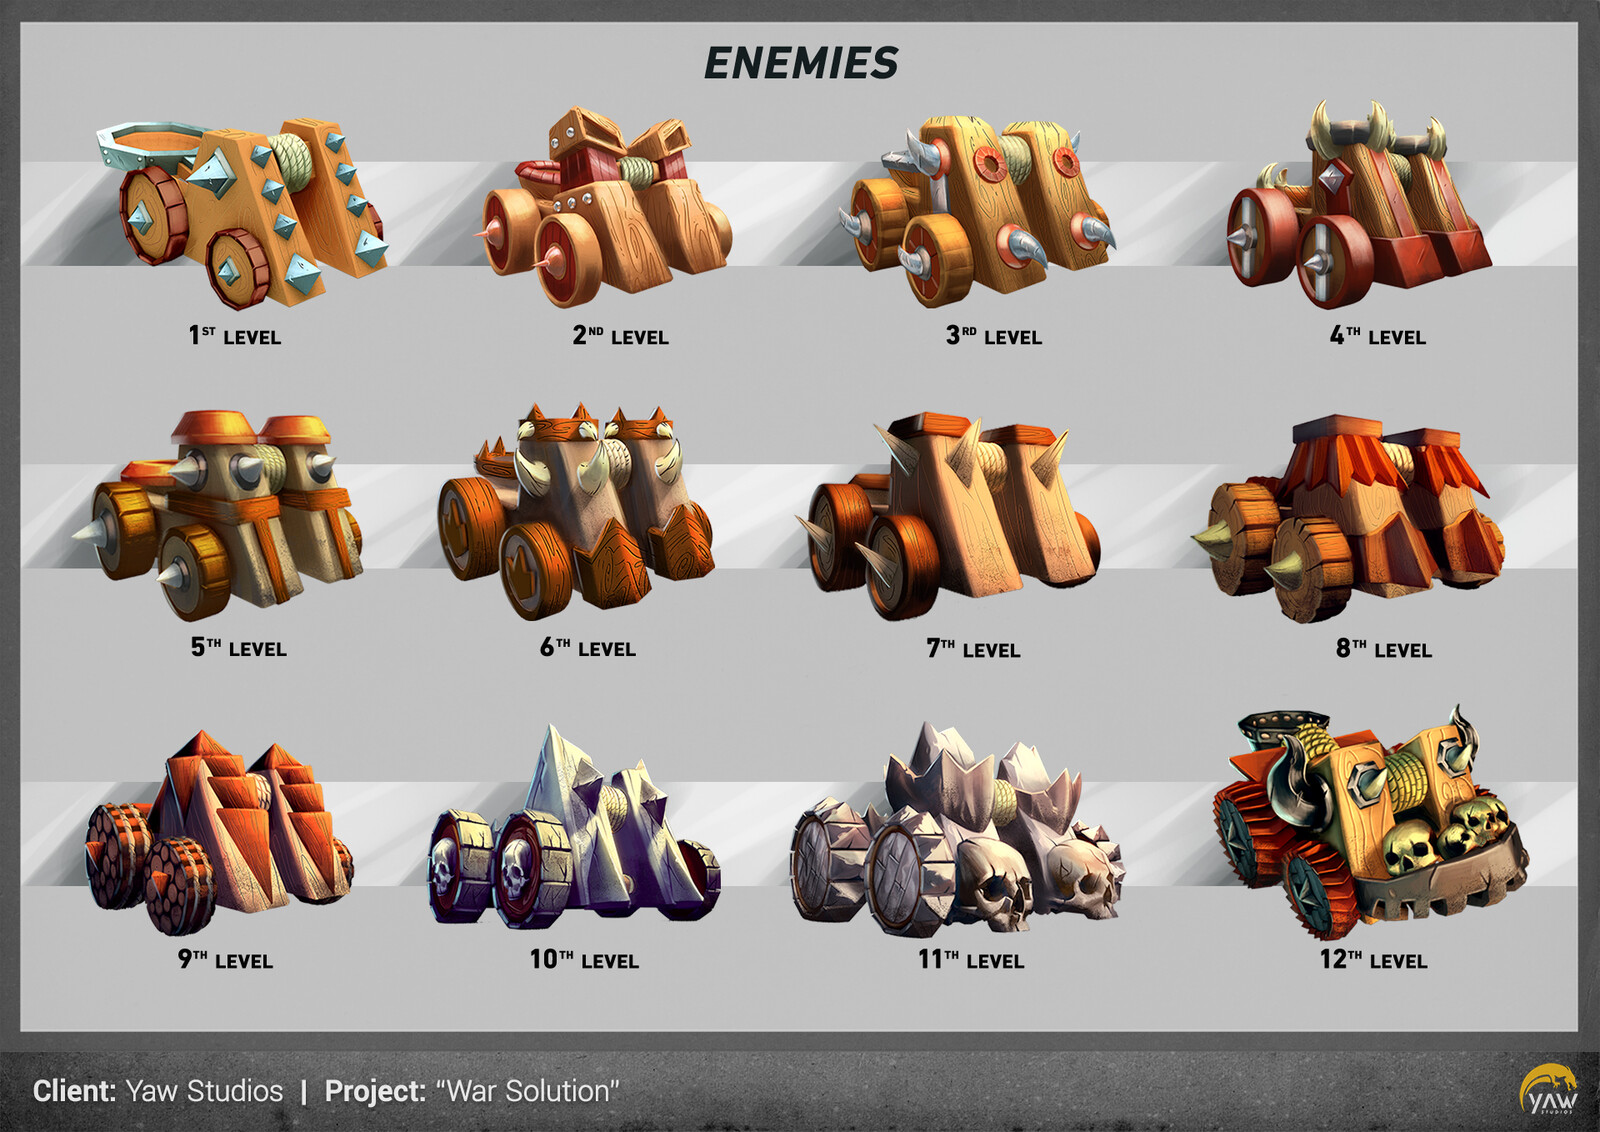 And 12 different designs for the enemy army.